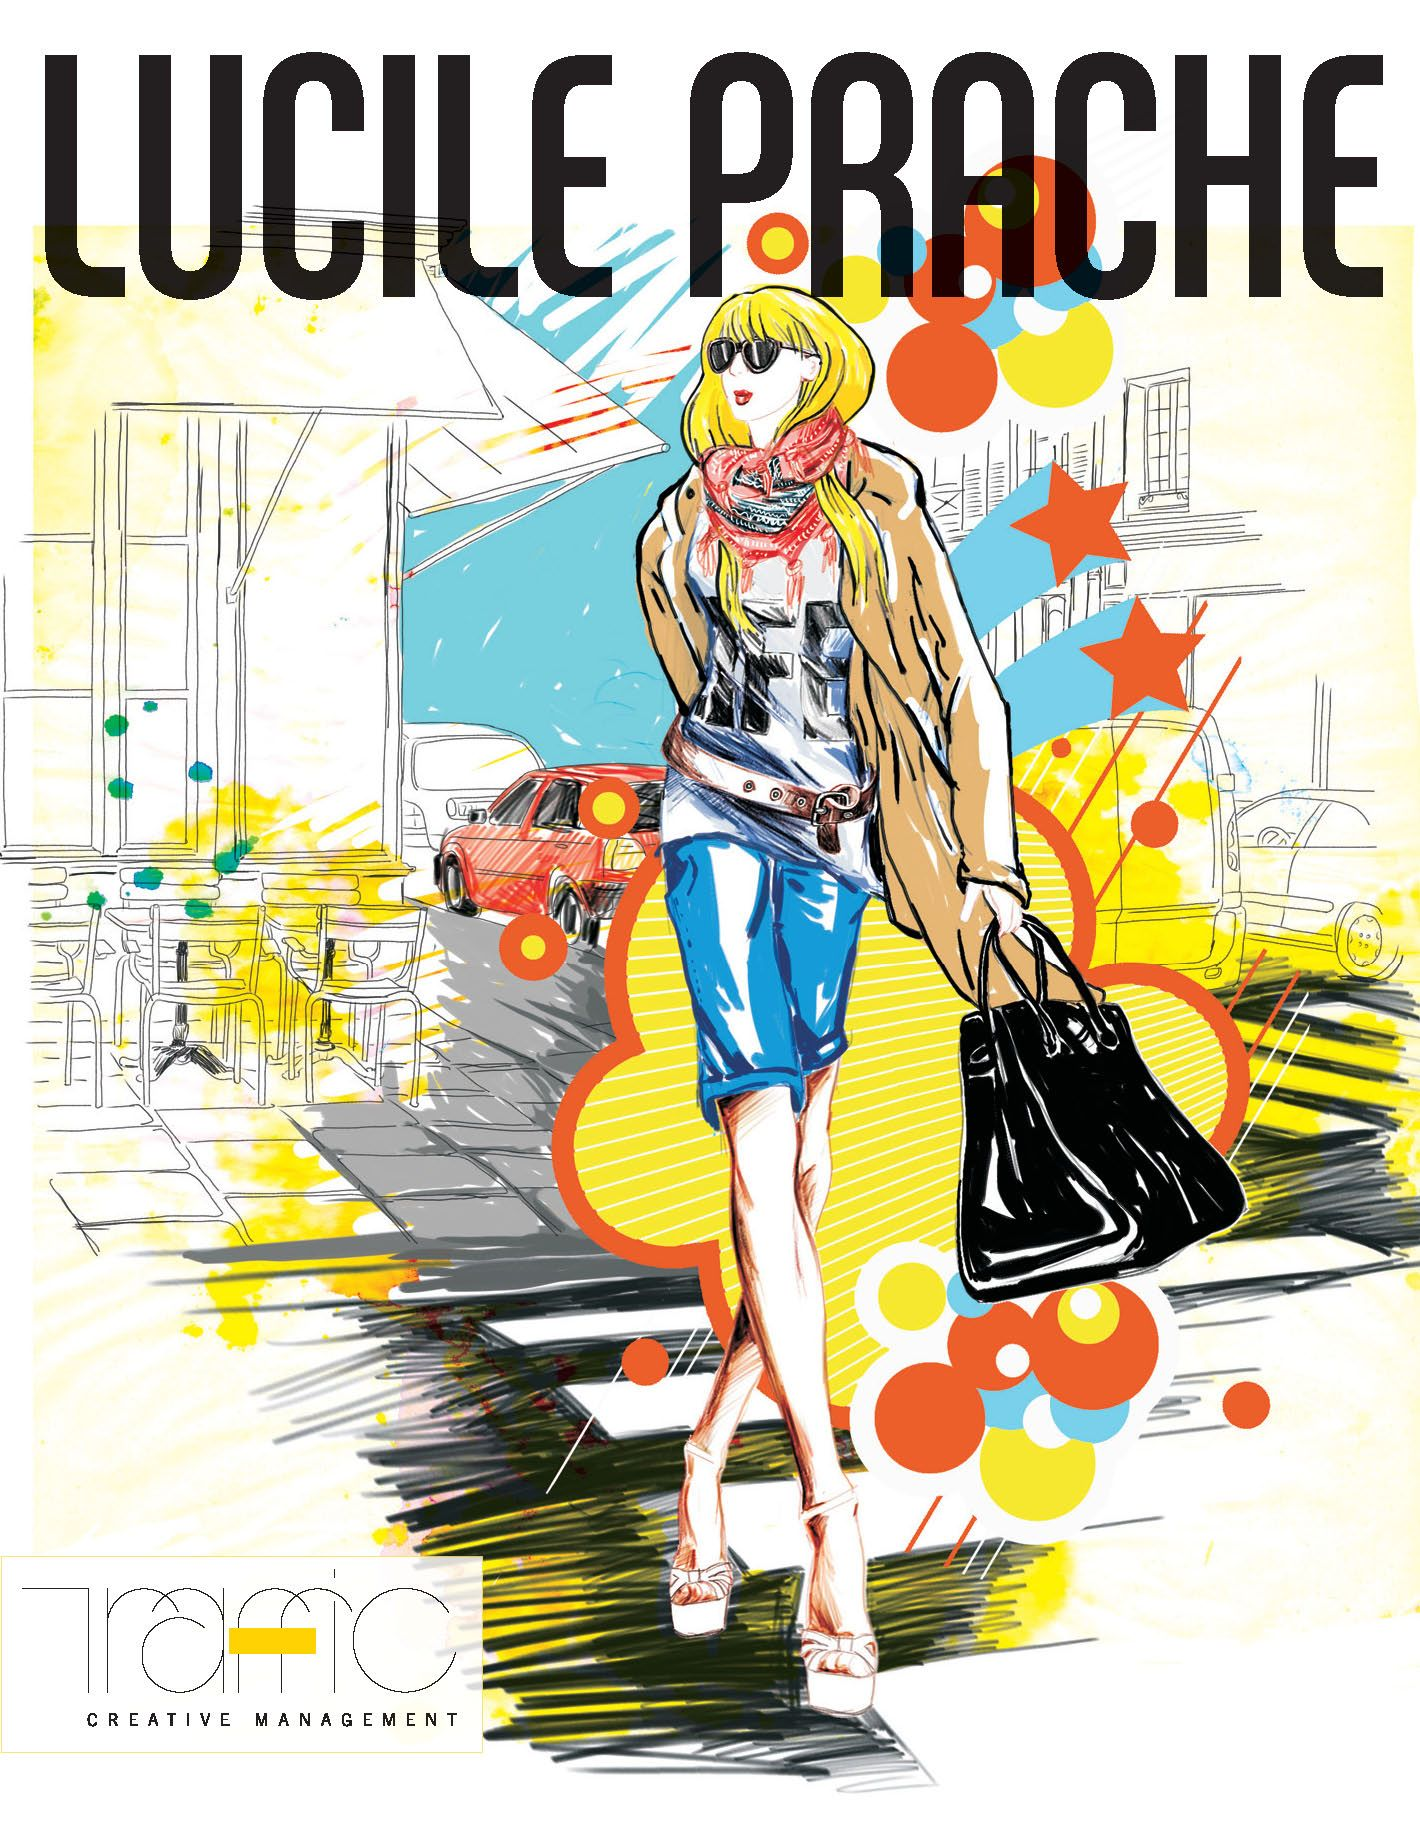 Charged with youthful energy and vitality, Lucile Prache's vibrant illustrations have amassed a vast following within the international illustration scene. Her energetic color palette combined with a unique artistic flare immediately captivated the attentions of numerous leading European fashion publications. As a result, Lucile has worked extensively with Marie Claire, Biba, Depeche Mode, Avantages, Phosphore and Muze magazines.#LucilePrache  #TrafficNYC #FashionIllustration #CuteBag